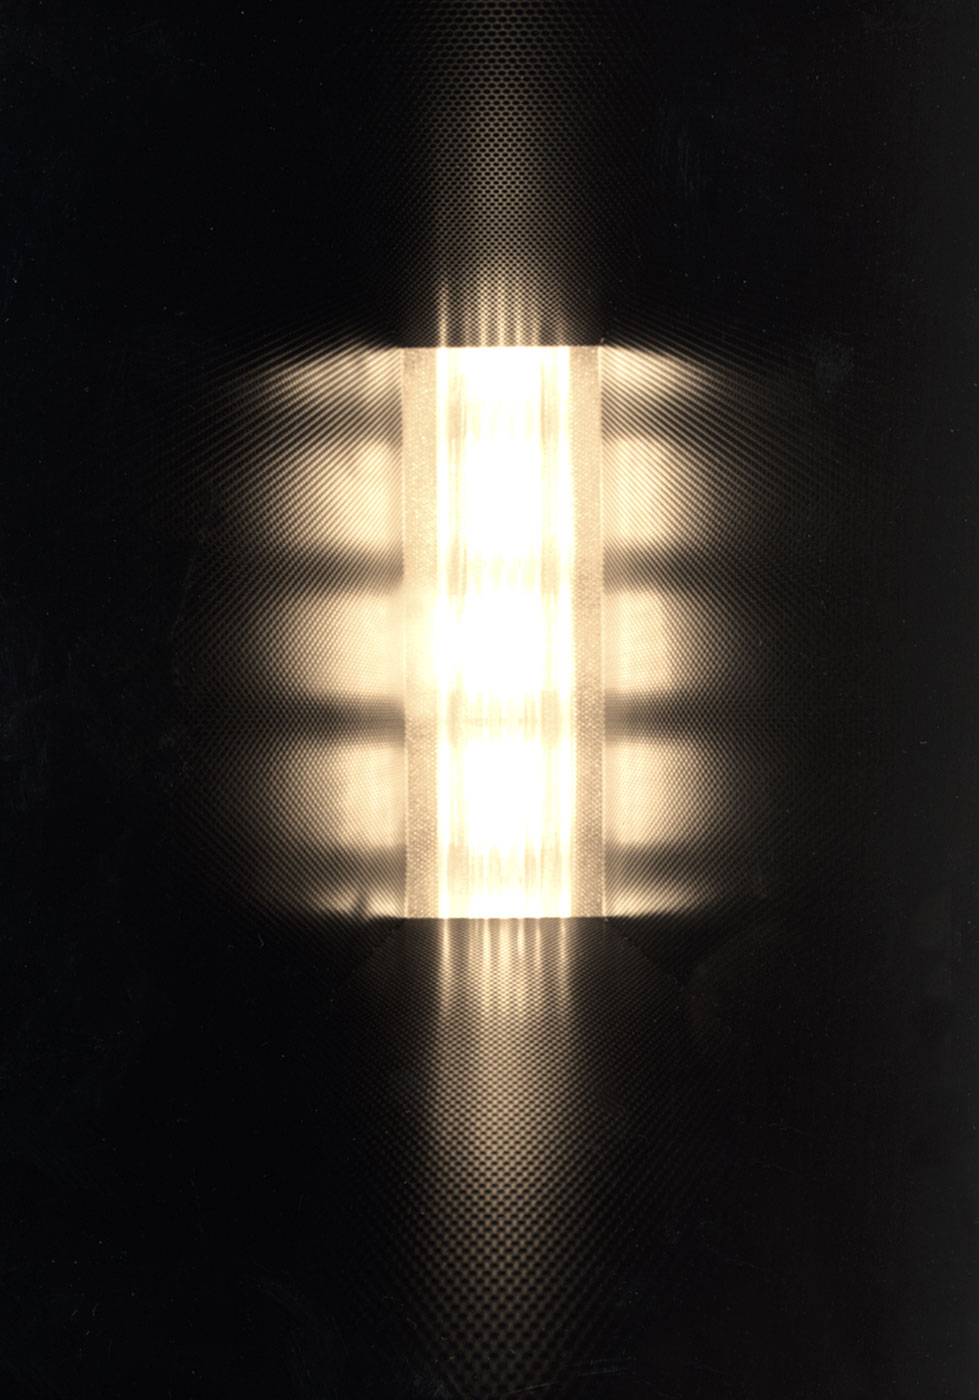 A pulsating light, acompanied by a calming engine sound gave the impression of standing inside a meditative reactor.